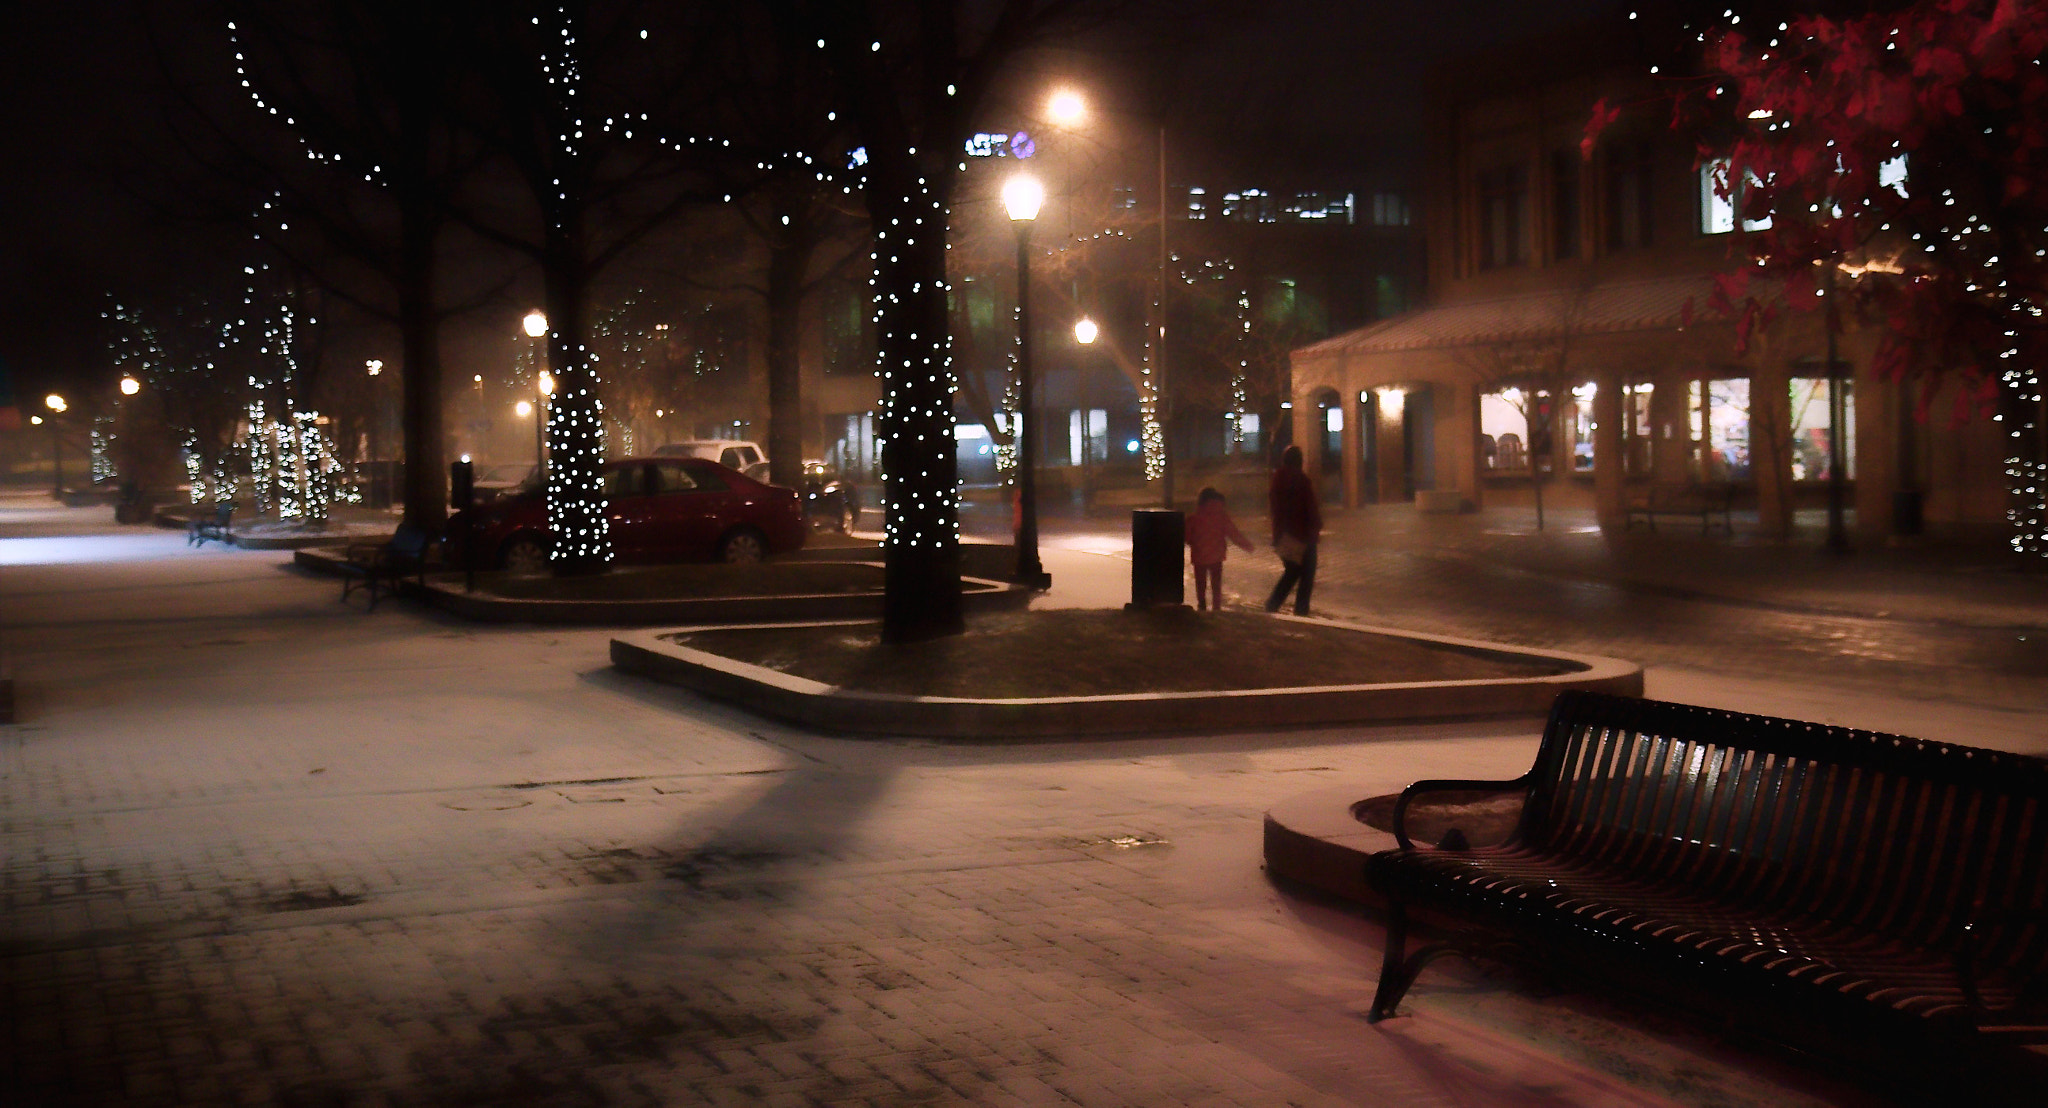 Photograph snowy evening in town by Johnny Gomez on 500px